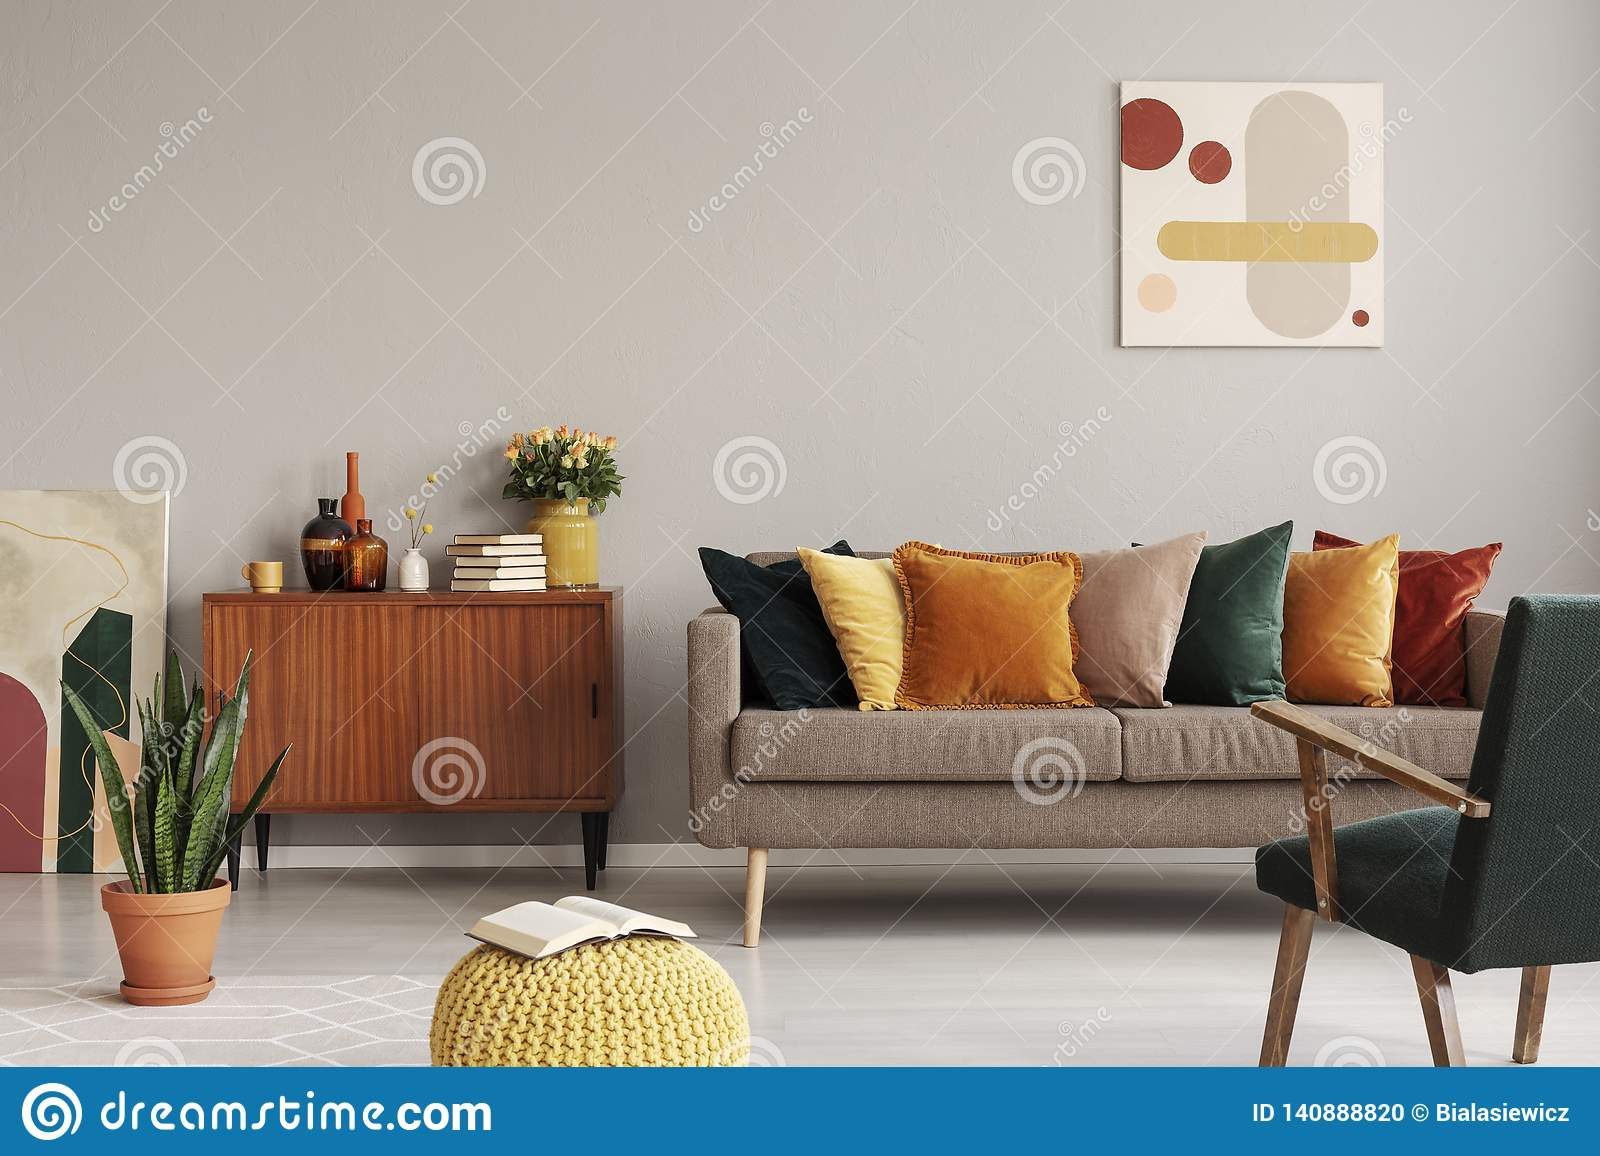 Abstract Painting On Grey Wall Of Retro Living Room Interior